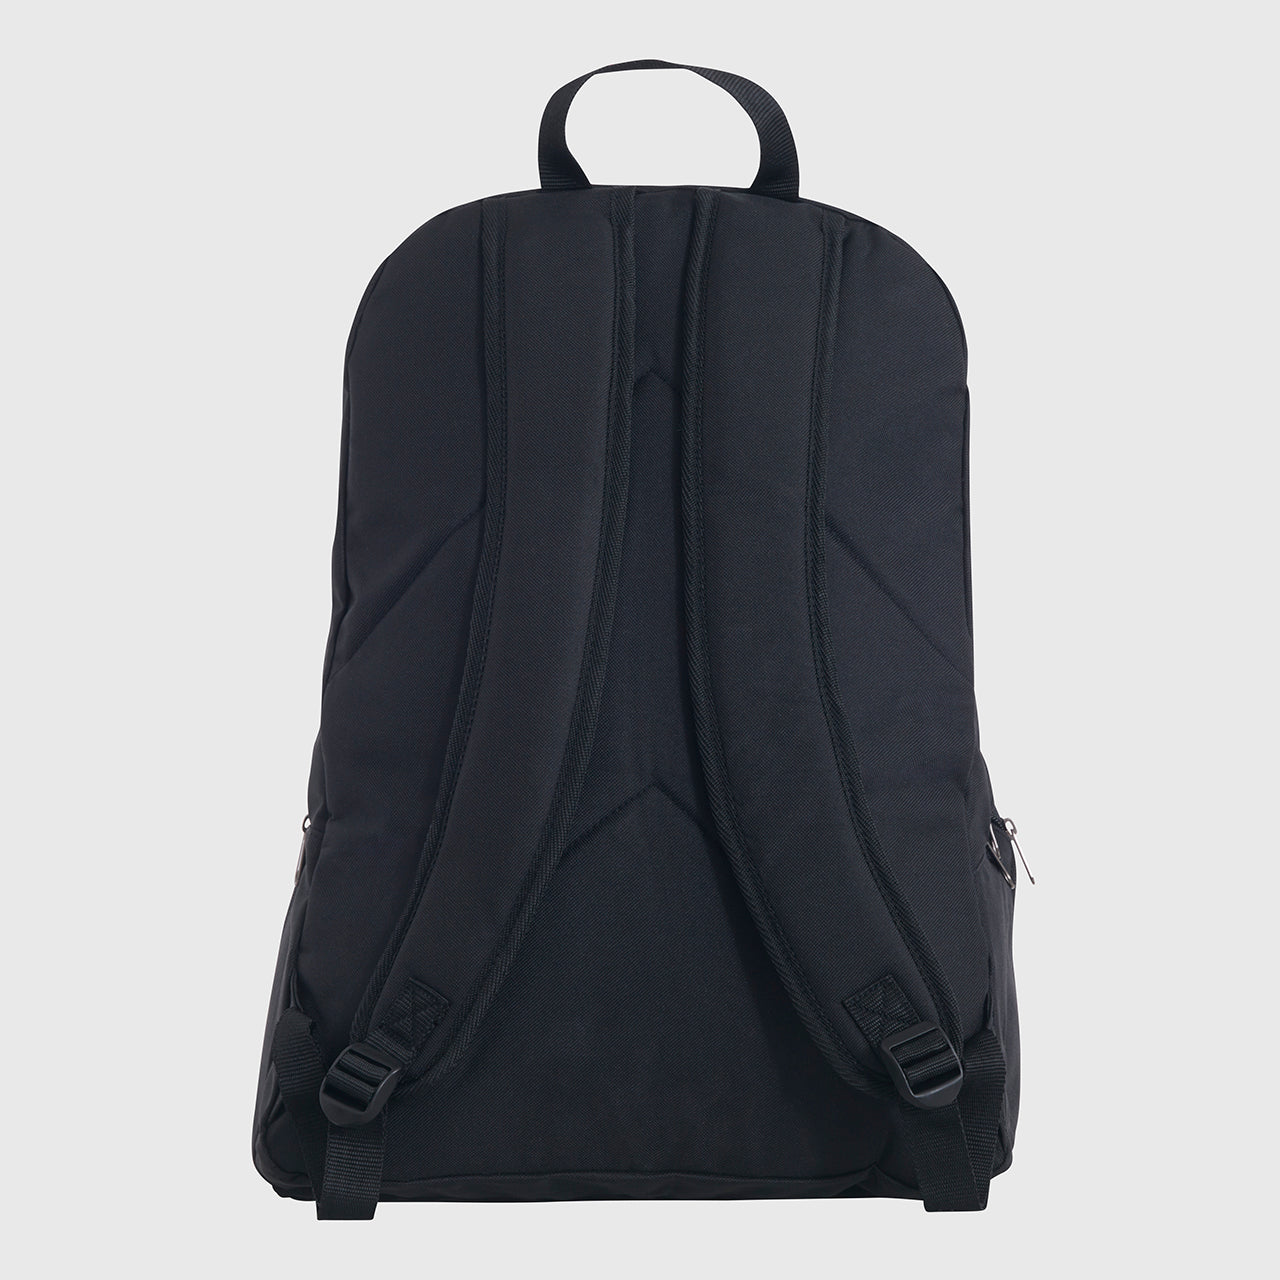 Sydney Kings 18/19 Team Back Pack